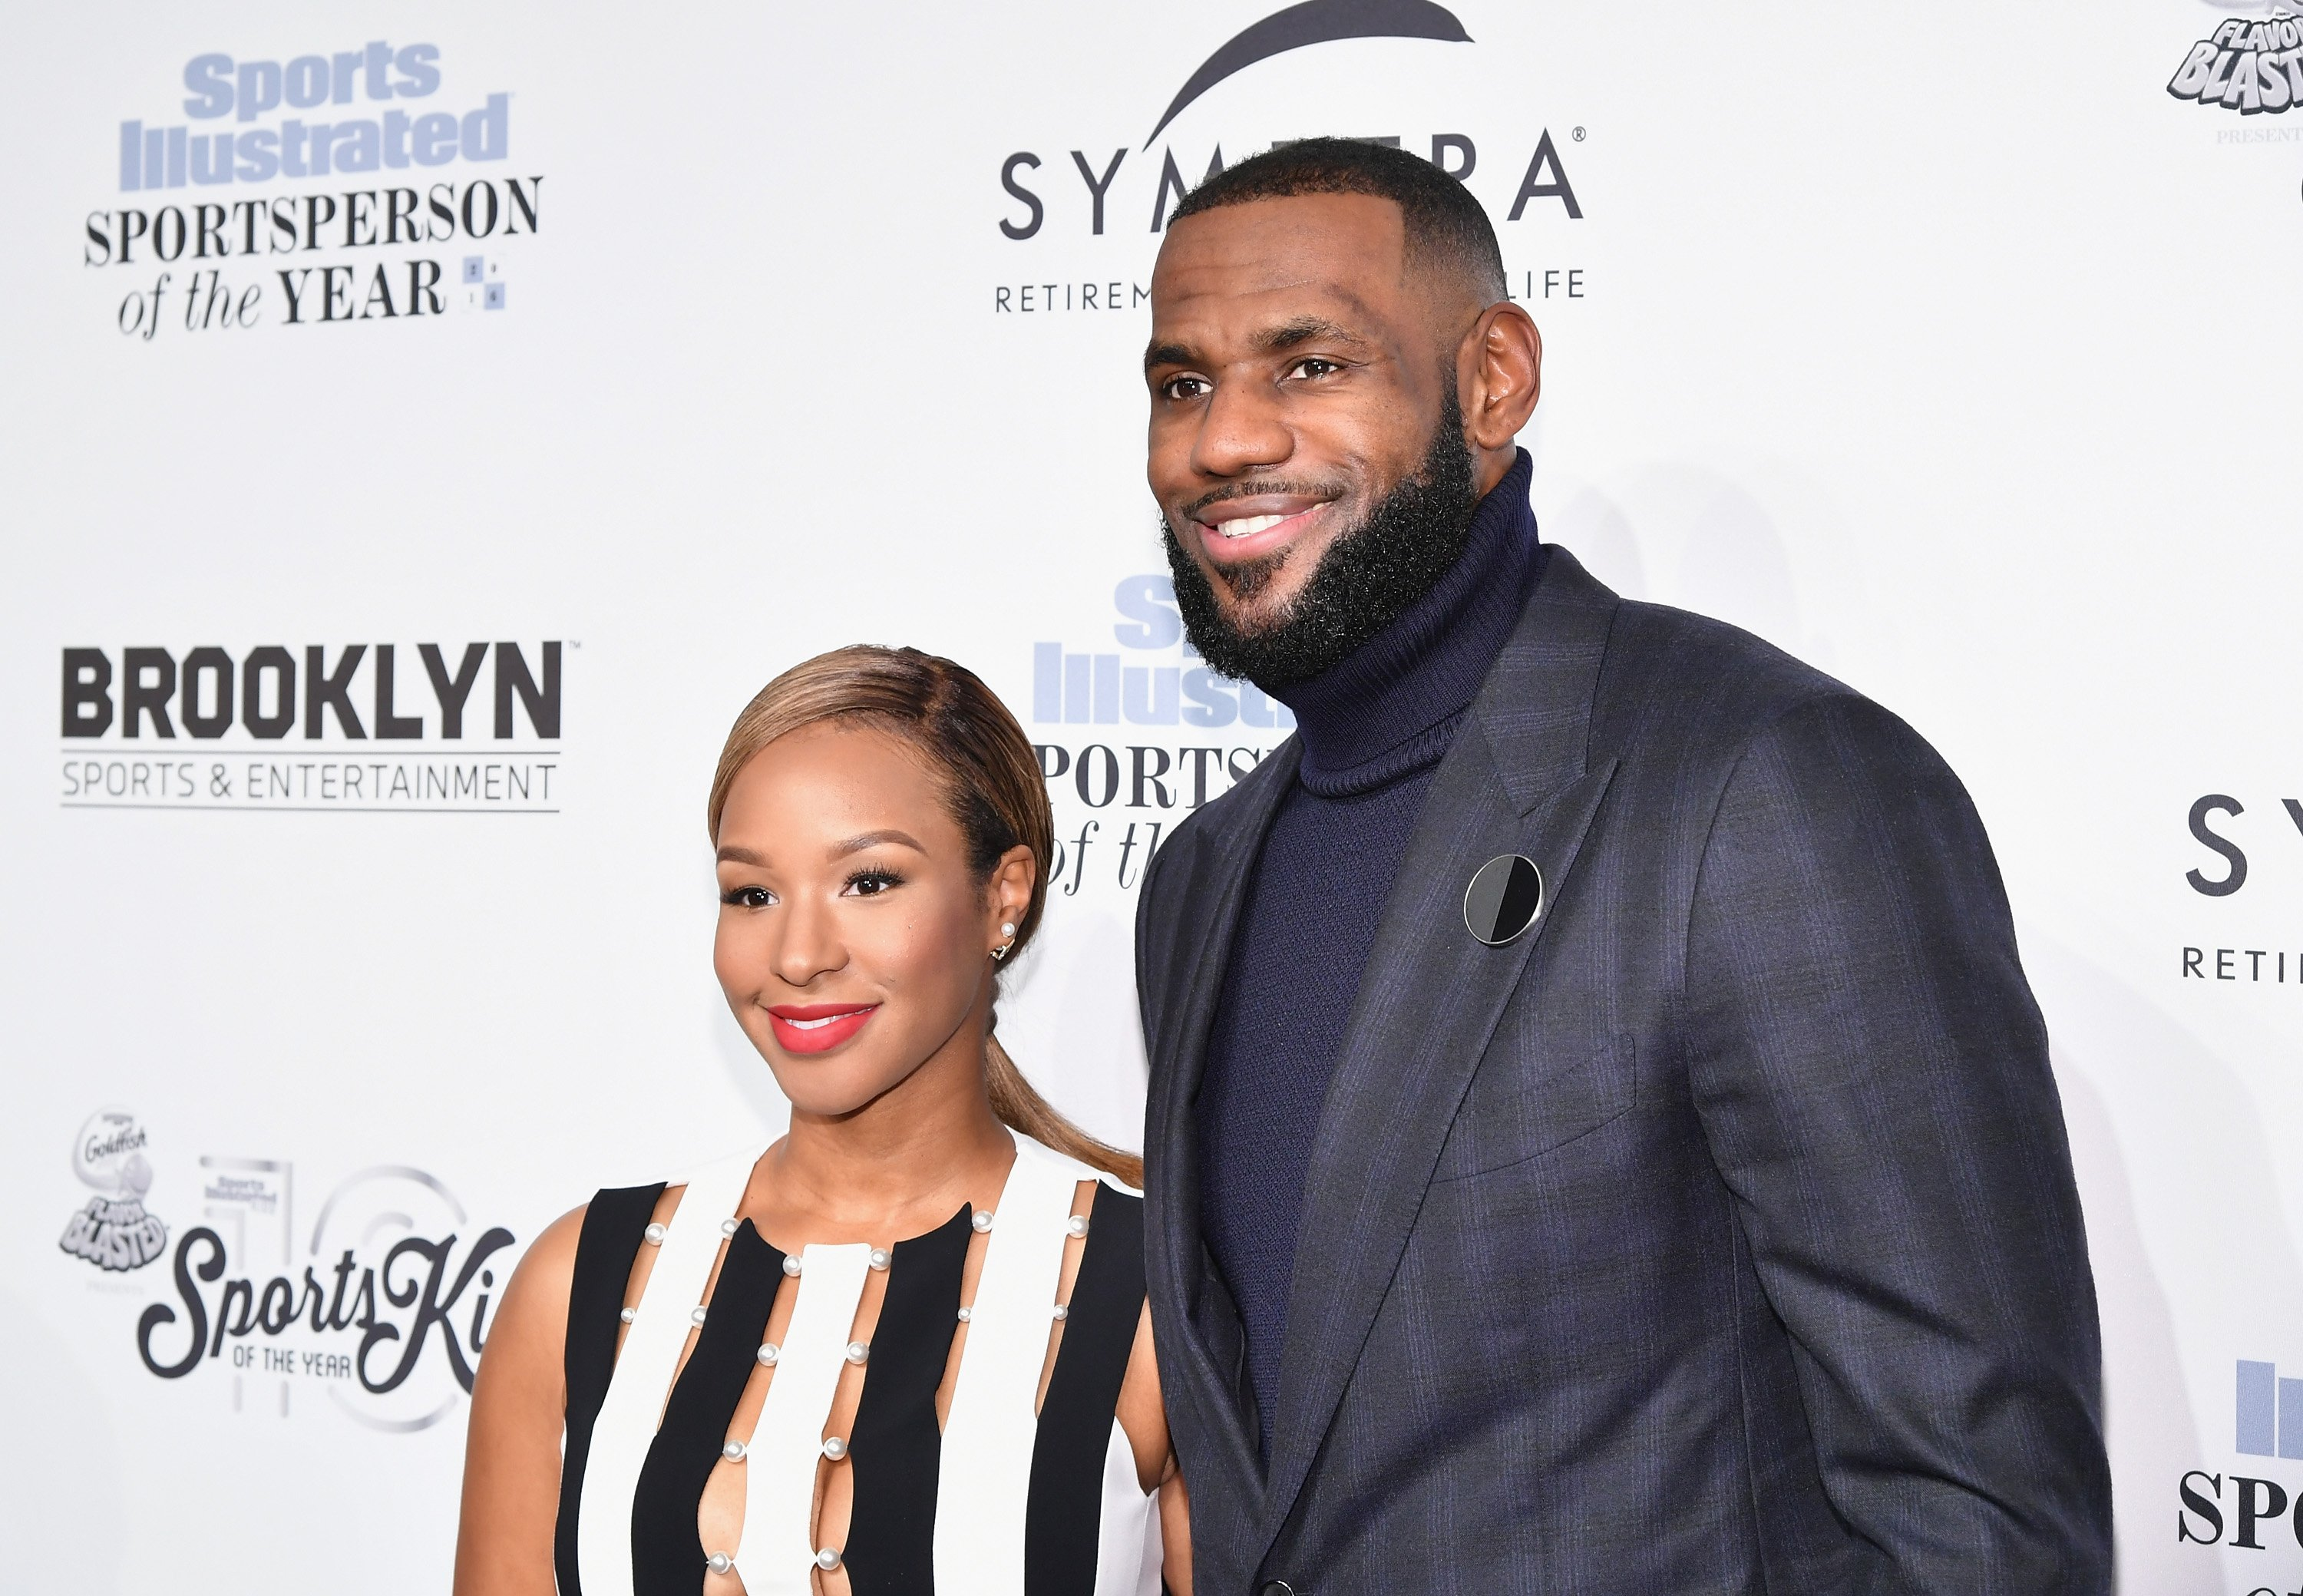 LeBron & Savannah James at the Sports Illustrated Sportsperson of the Year Ceremony on Dec. 12, 2016 in New York City | Photo: Getty Images